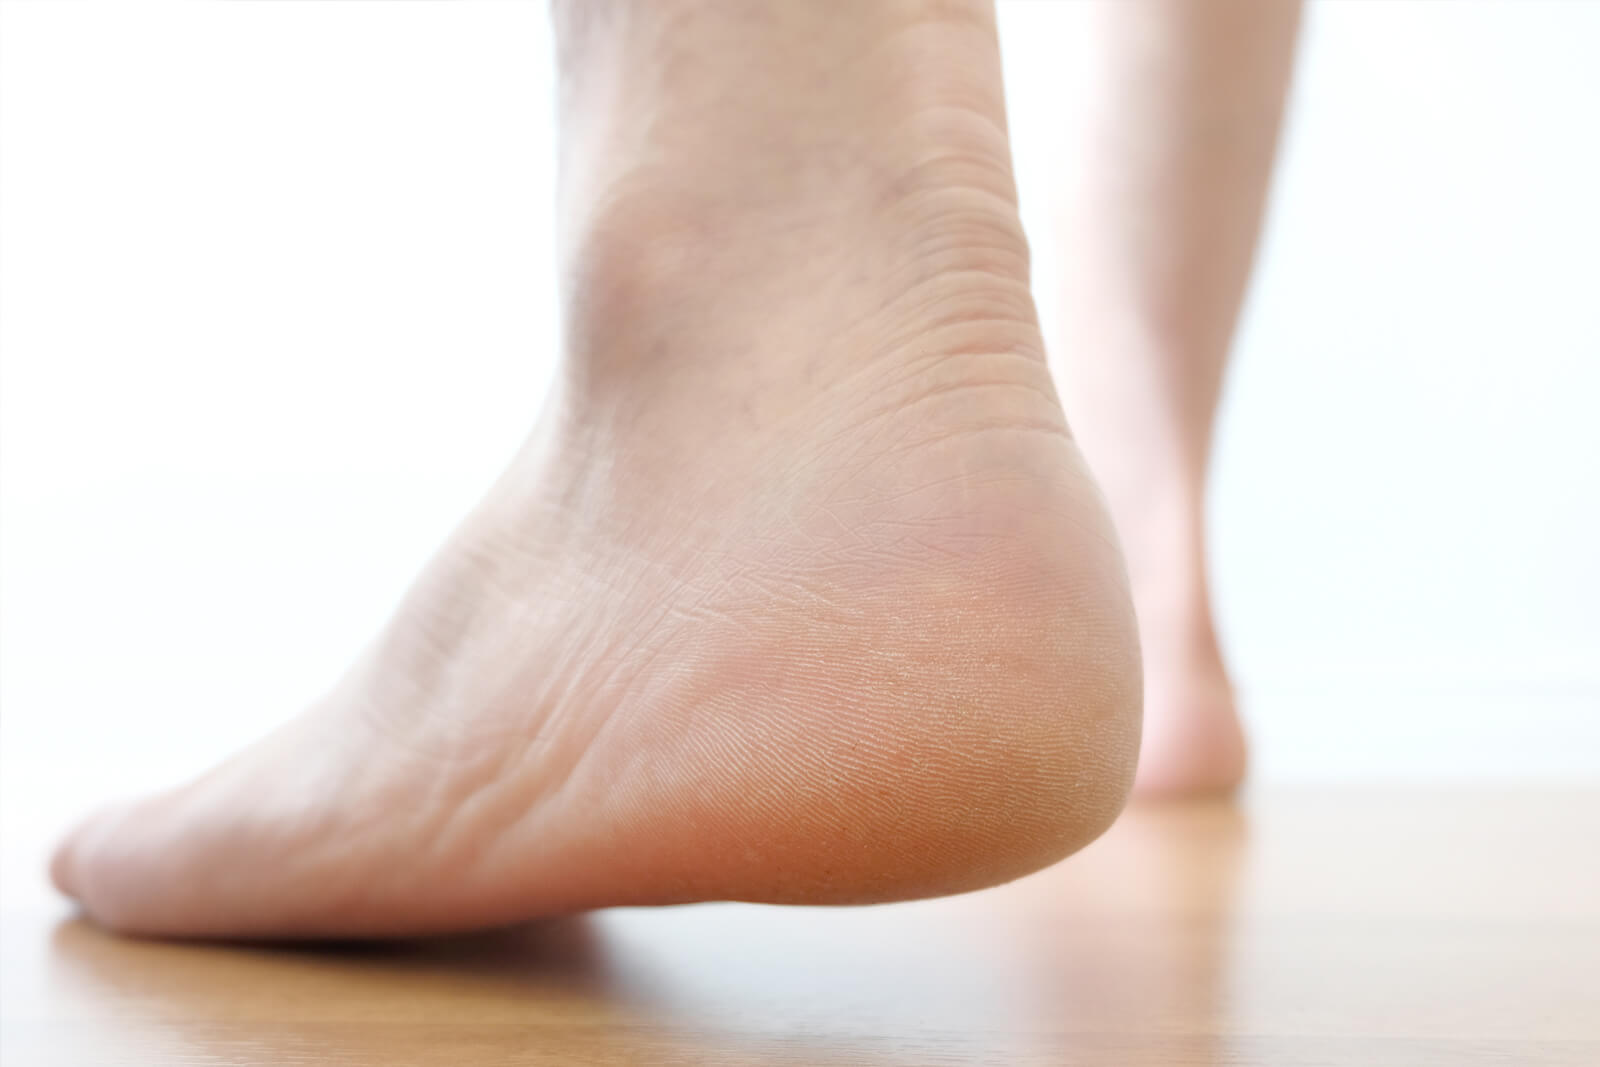 Walking can be painful if you have heel pain from plantar fasciitis